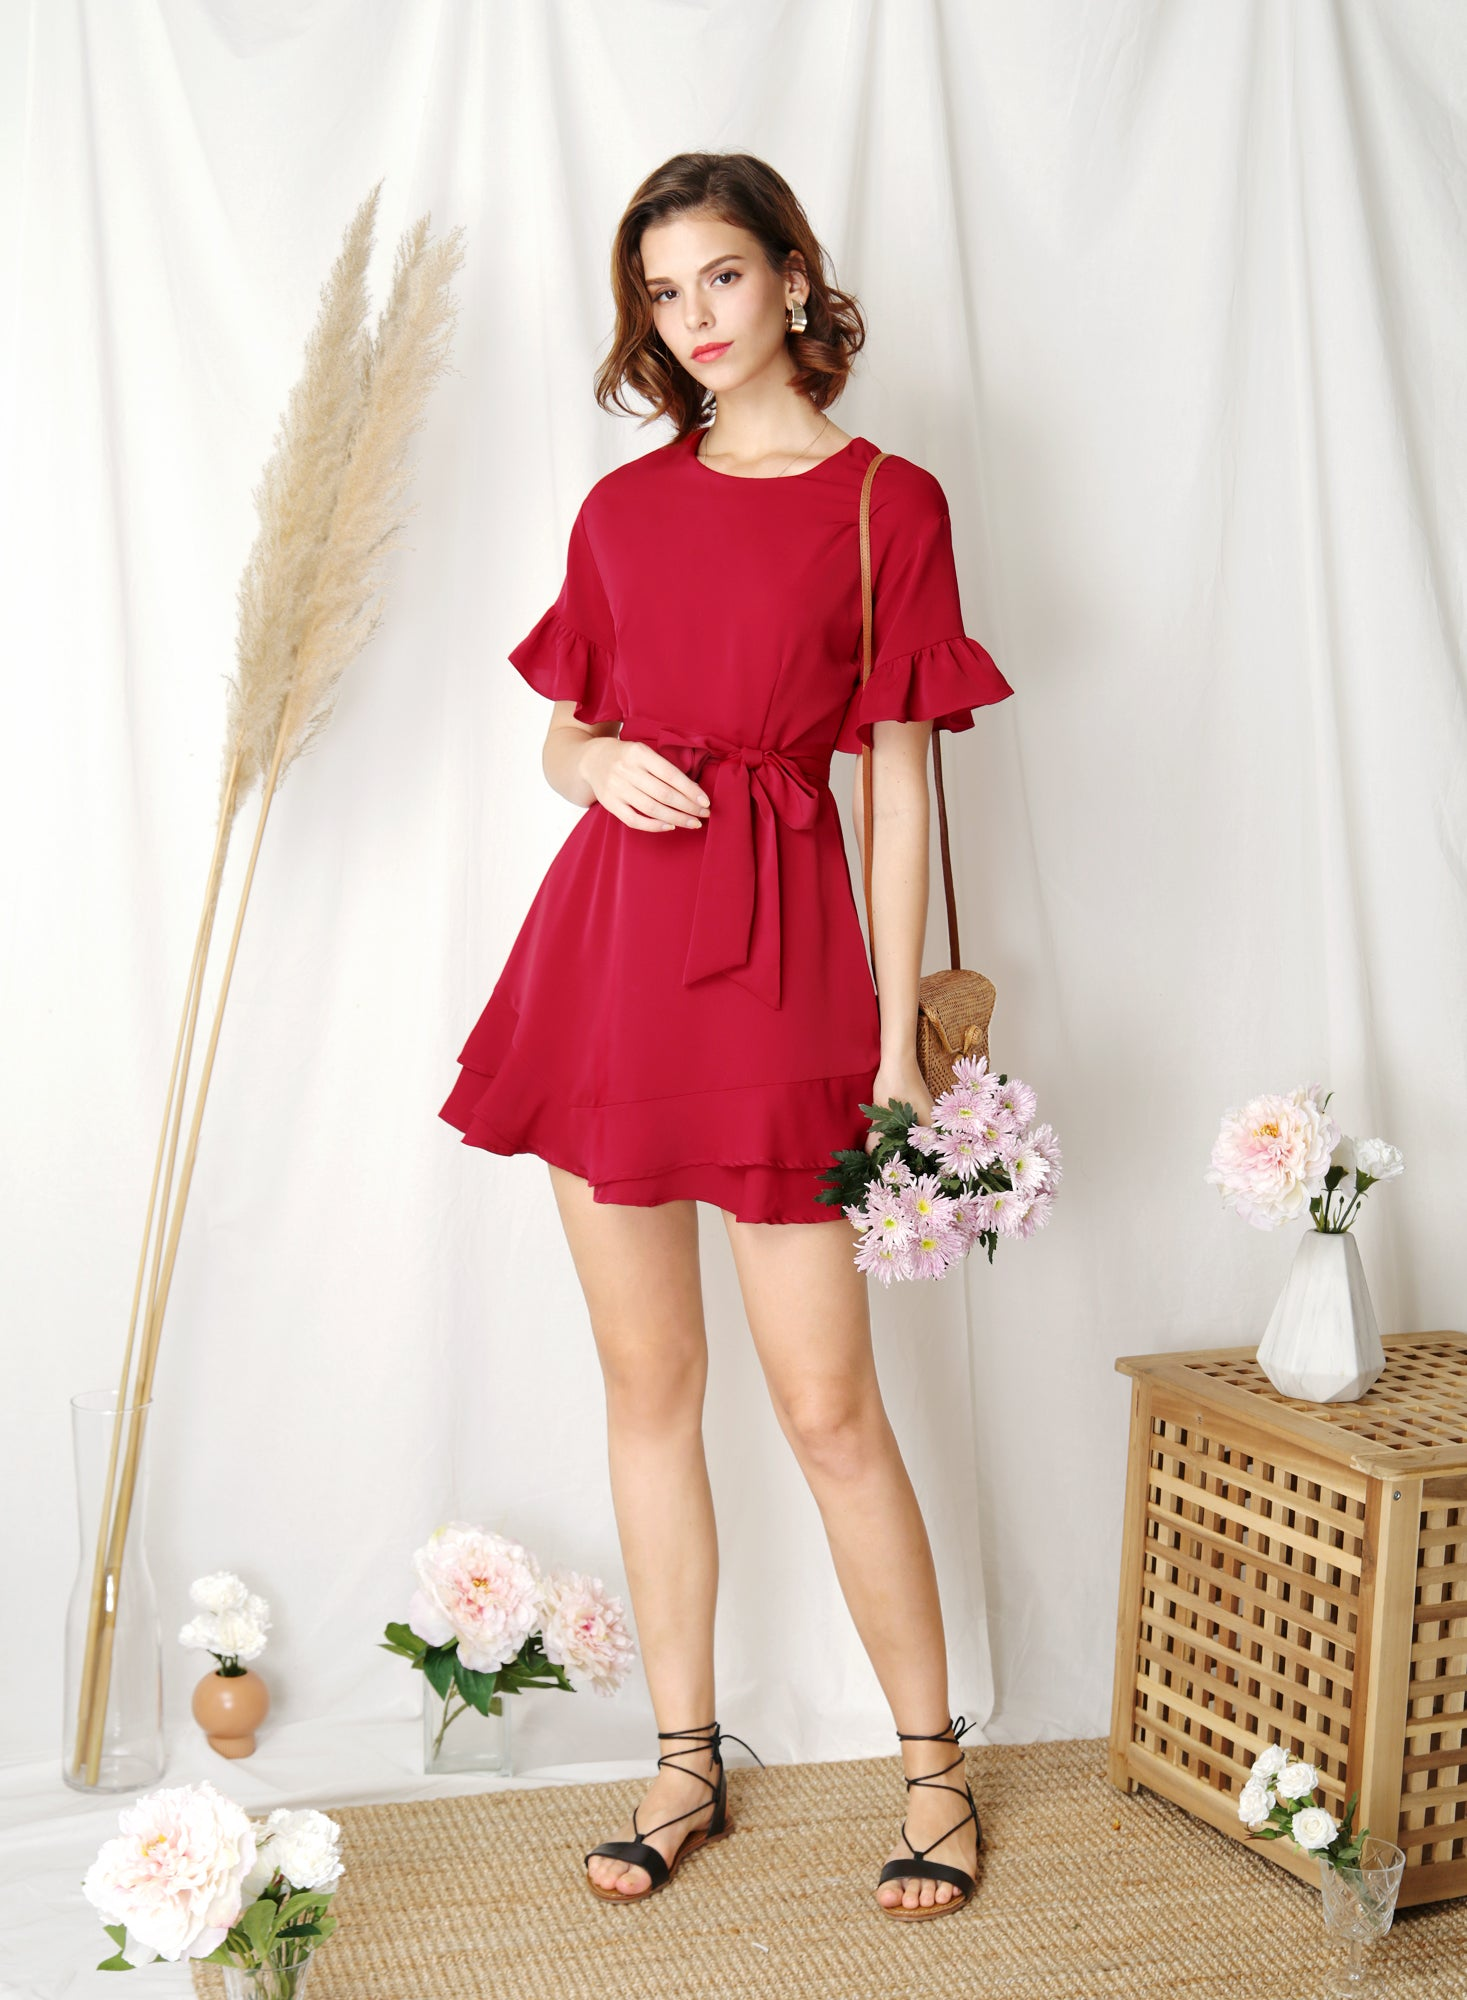 Daylight Ruffle Edge Dress (Scarlet) at $ 43.50 only sold at And Well Dressed Online Fashion Store Singapore